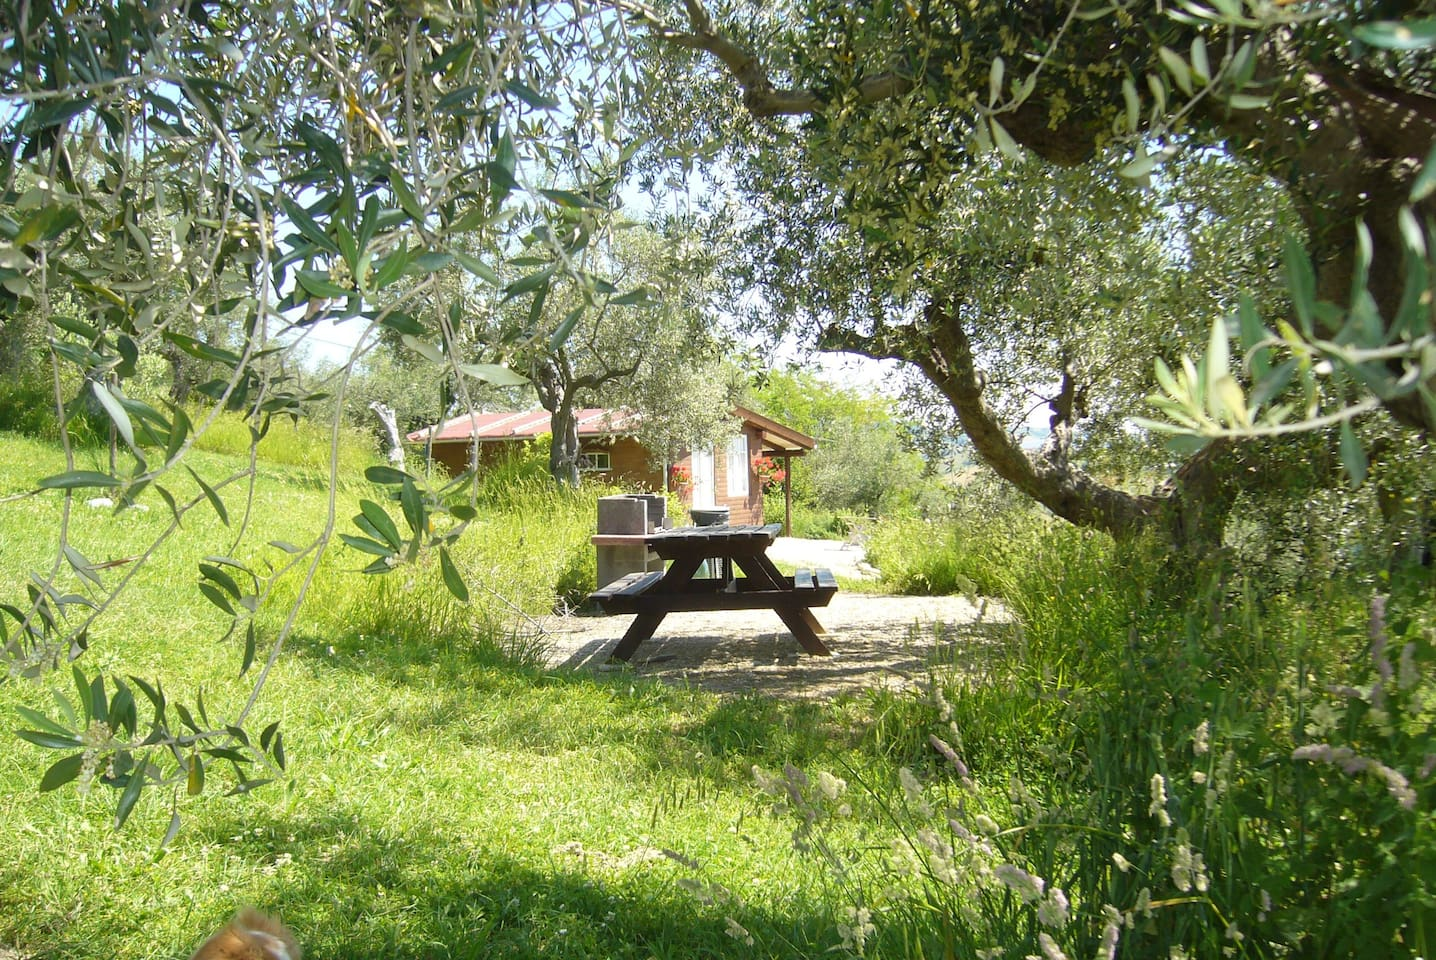 Our cabin 'delle sorelle' near the public fireplace between the old olive trees on the campsite.